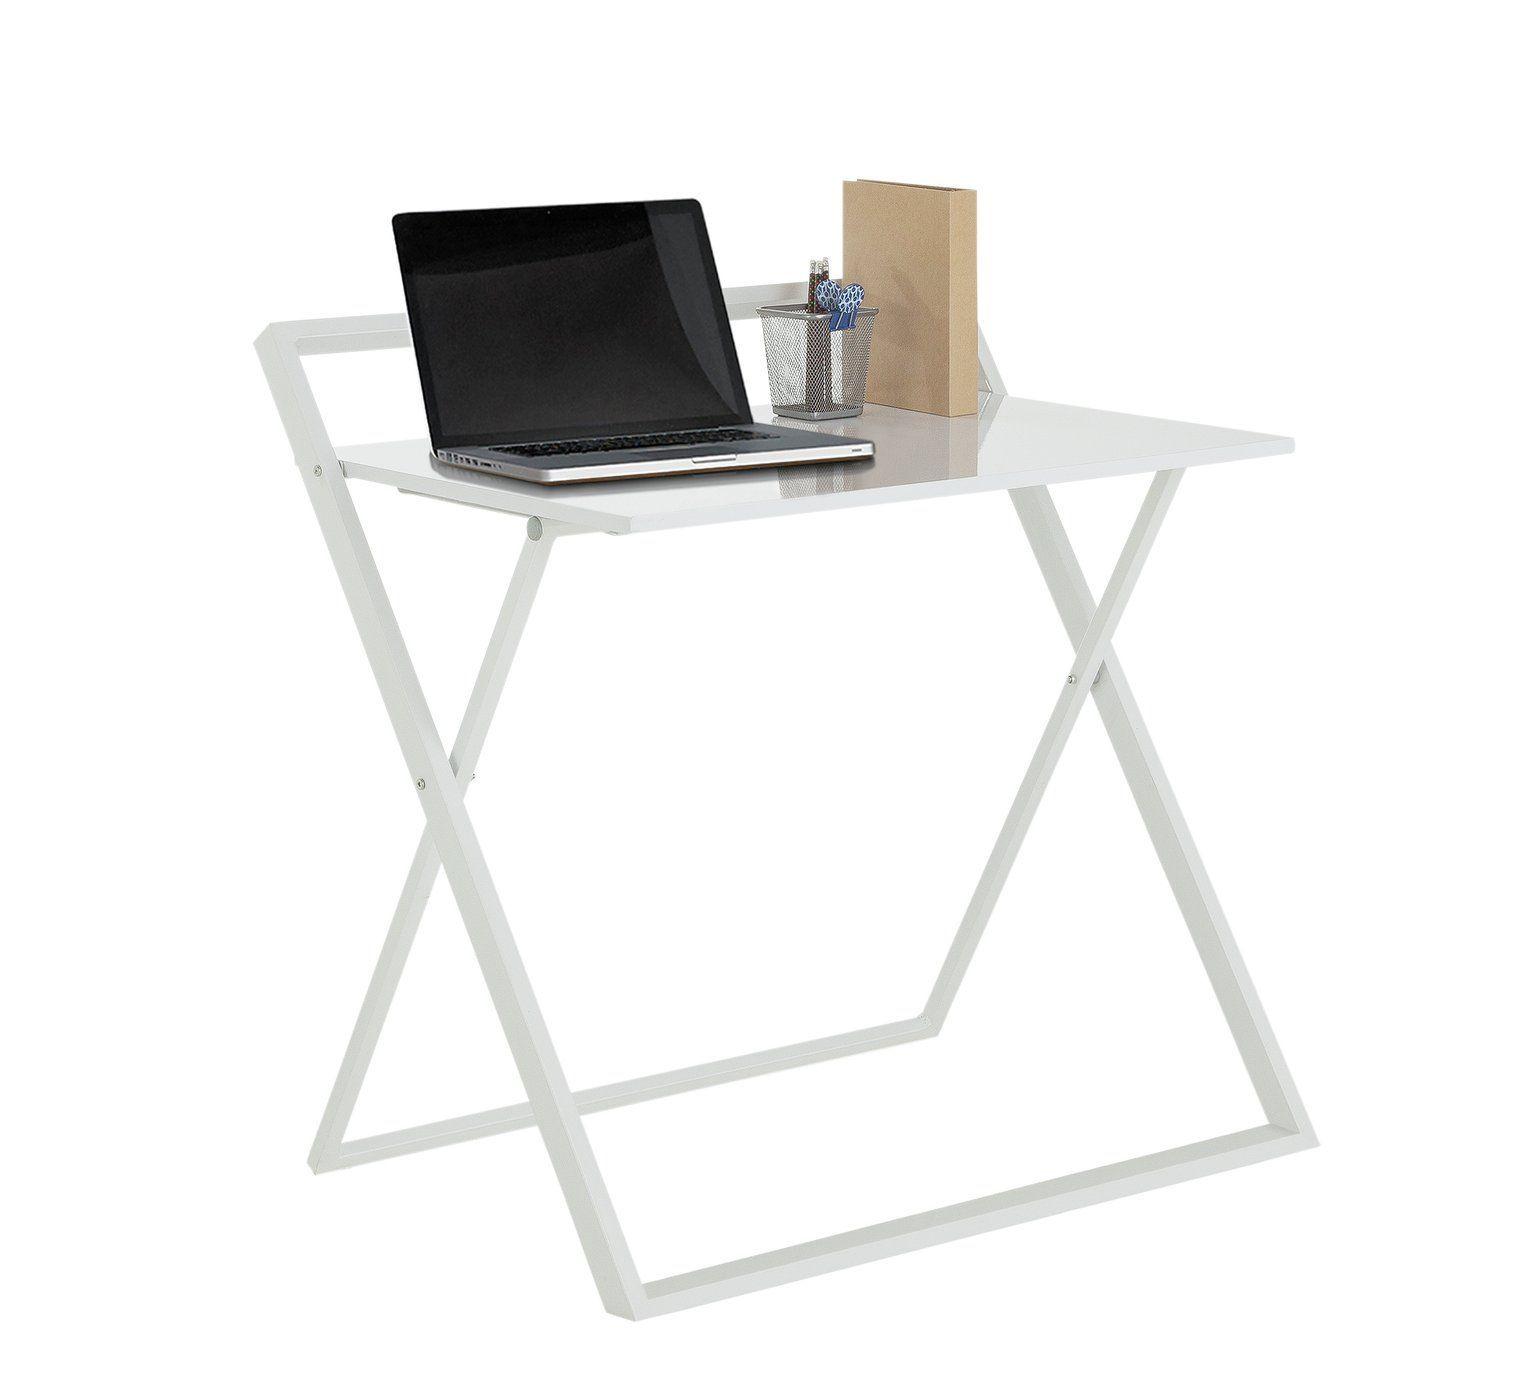 Buy HOME Compact Folding Easy Clean Desk - White at Argos.co.uk ...